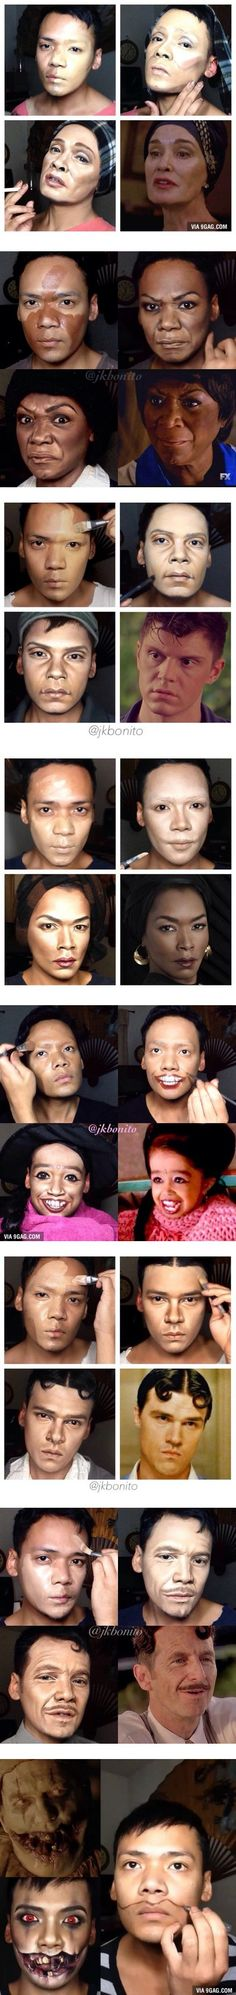 "Guy Transforms Himself Into Every ""American Horror Story"" Character With Nothing But Makeup vía #9gag"